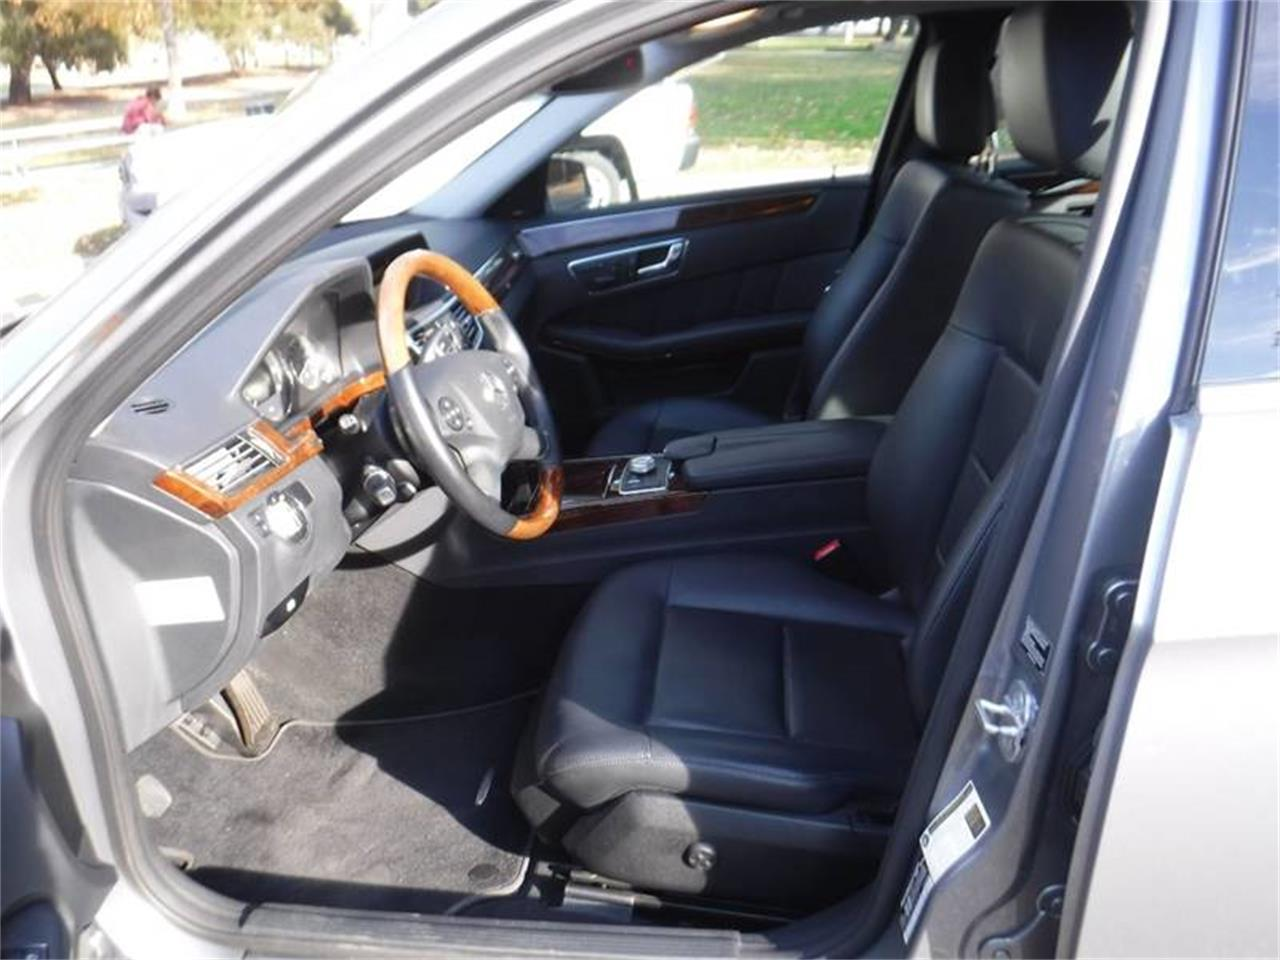 2010 Mercedes-Benz E-Class for sale in Thousand Oaks, CA – photo 10